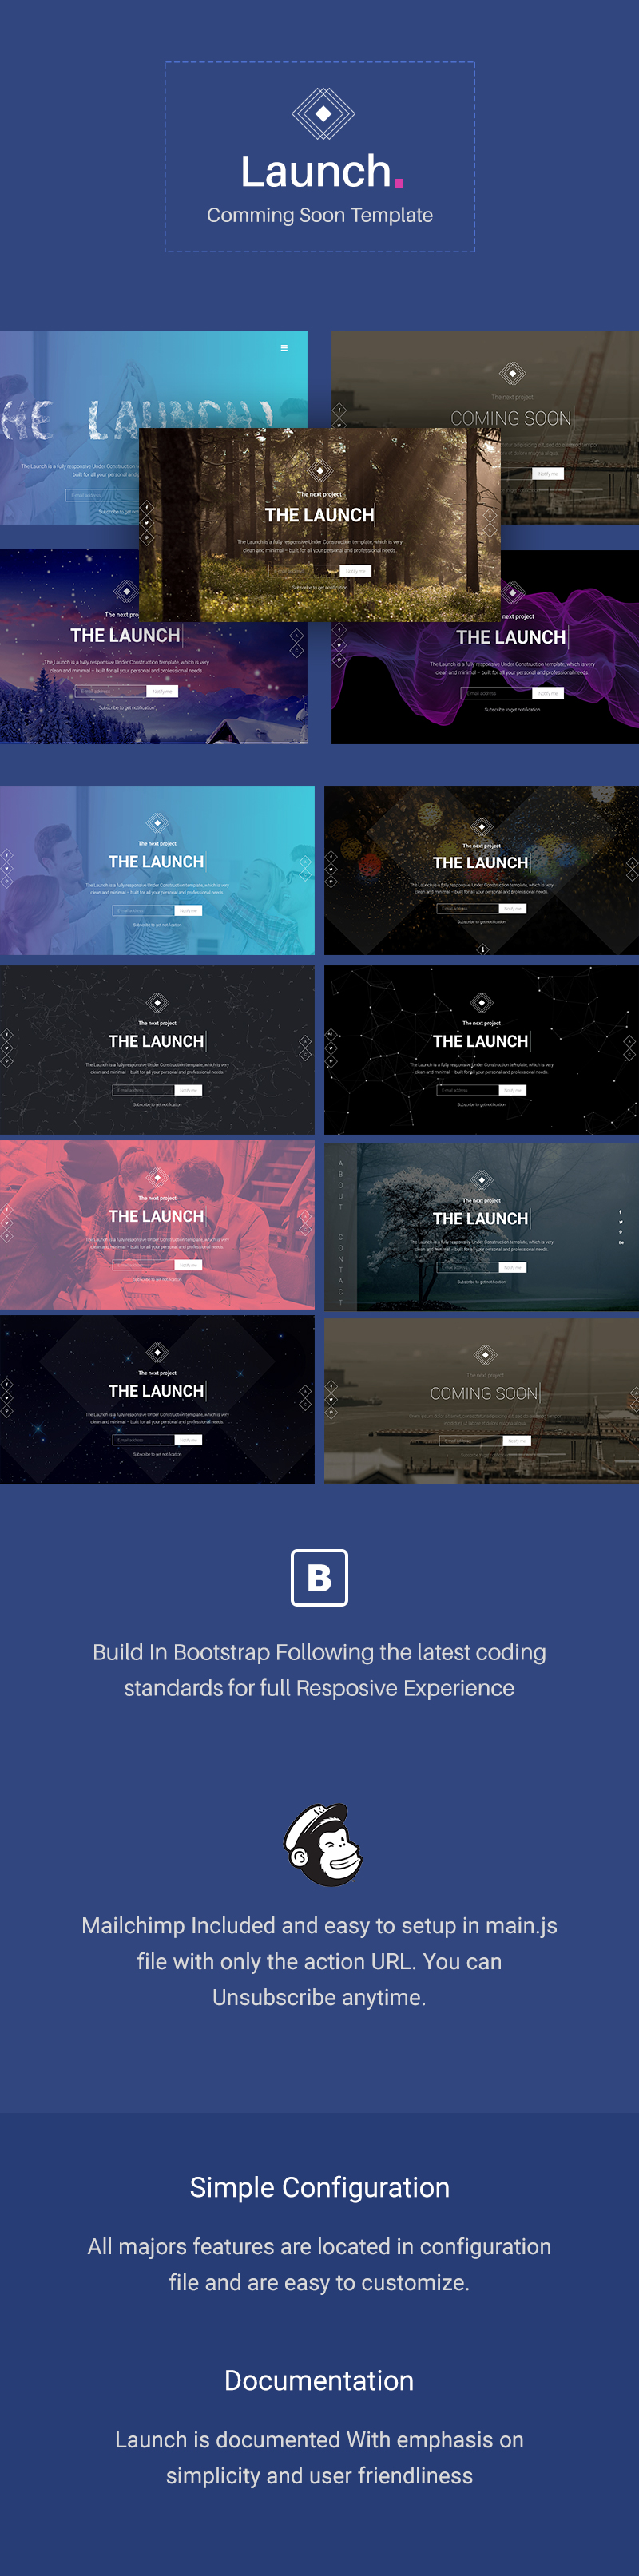 Launch - Coming Soon / Under Construction Template - 1